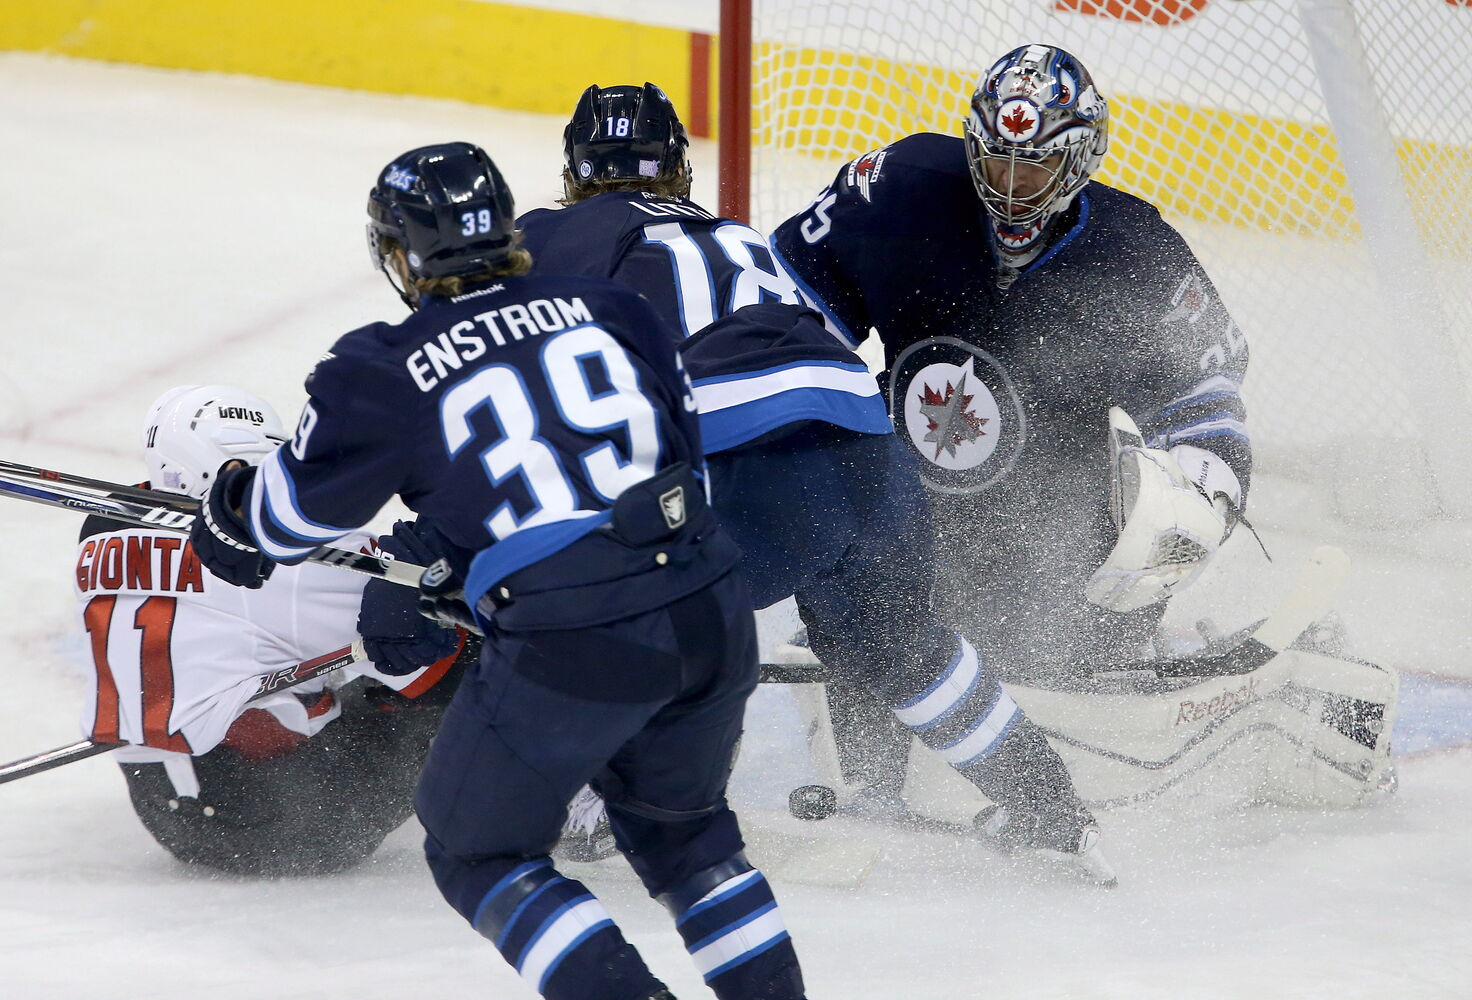 Stephen Gionta slides in front of the Winnipeg Jets net as Toby Enstrom, Bryan Little and goaltender Al Montoya all try to stop the puck during the first period. (Trevor Hagan / The Canadian Press)